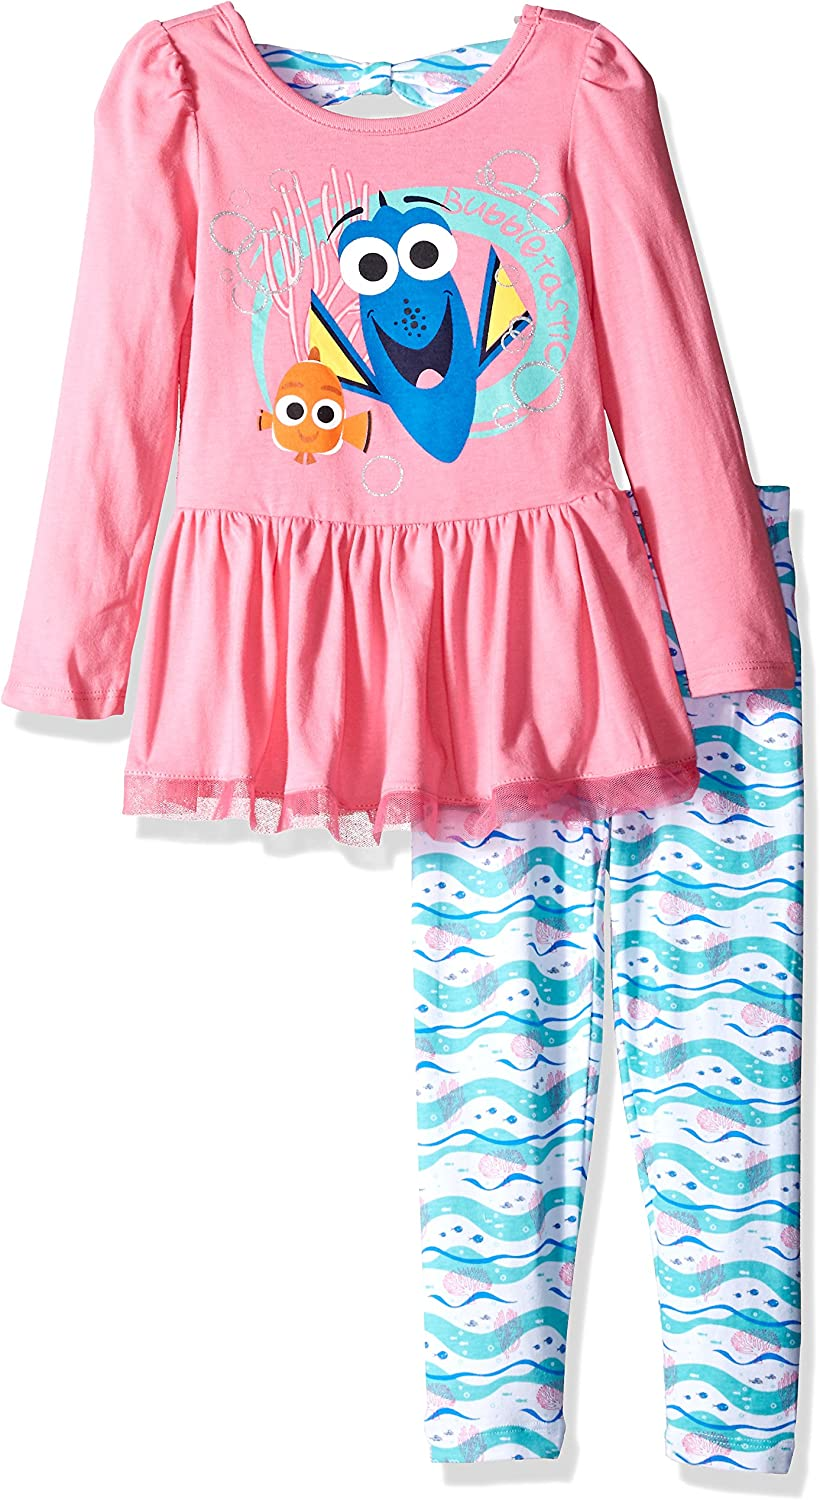 Sleeve Finding Dory T-Shirt Toddlers//Girls Bow New DisneyTurquoise Short 2T- 6x